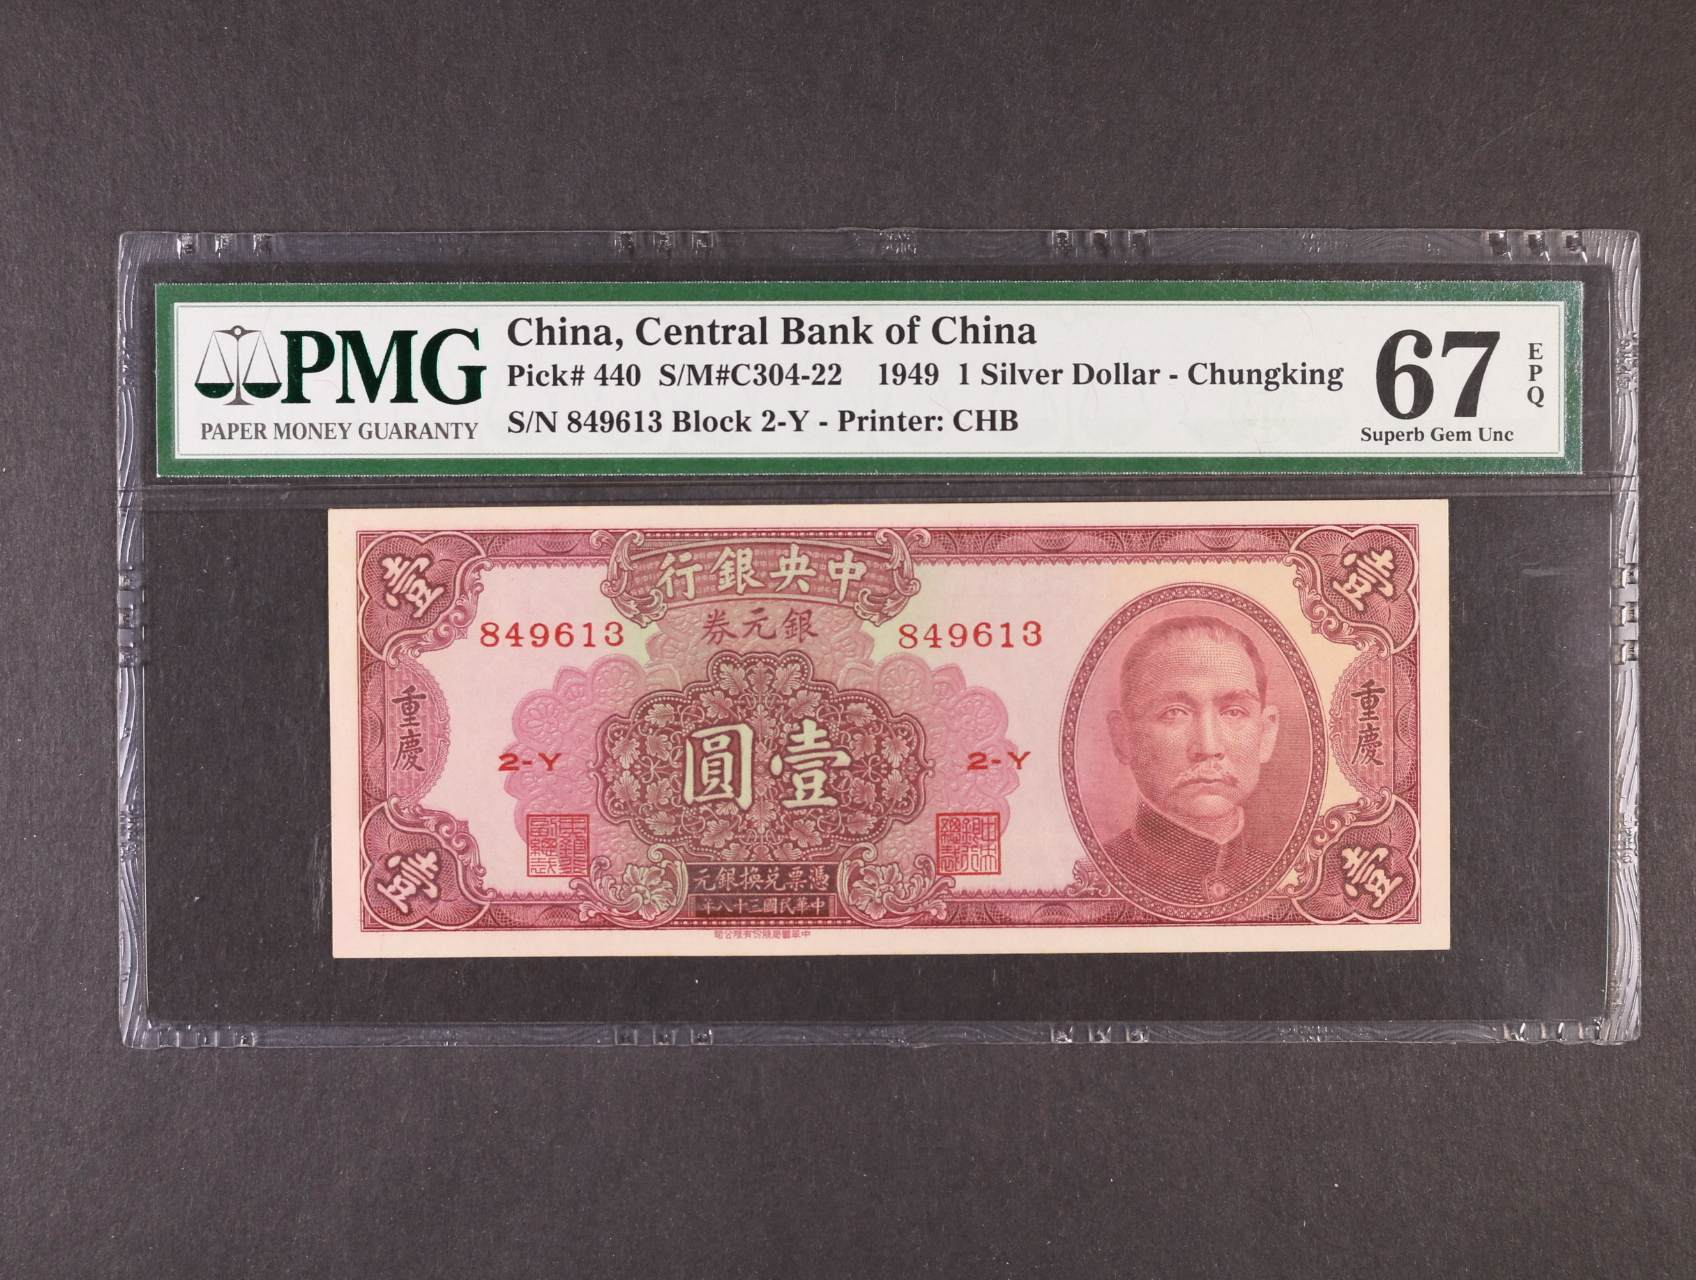 Central Bank of China, 1 Silver Dollar 1949, Pi. 440, PMG 67